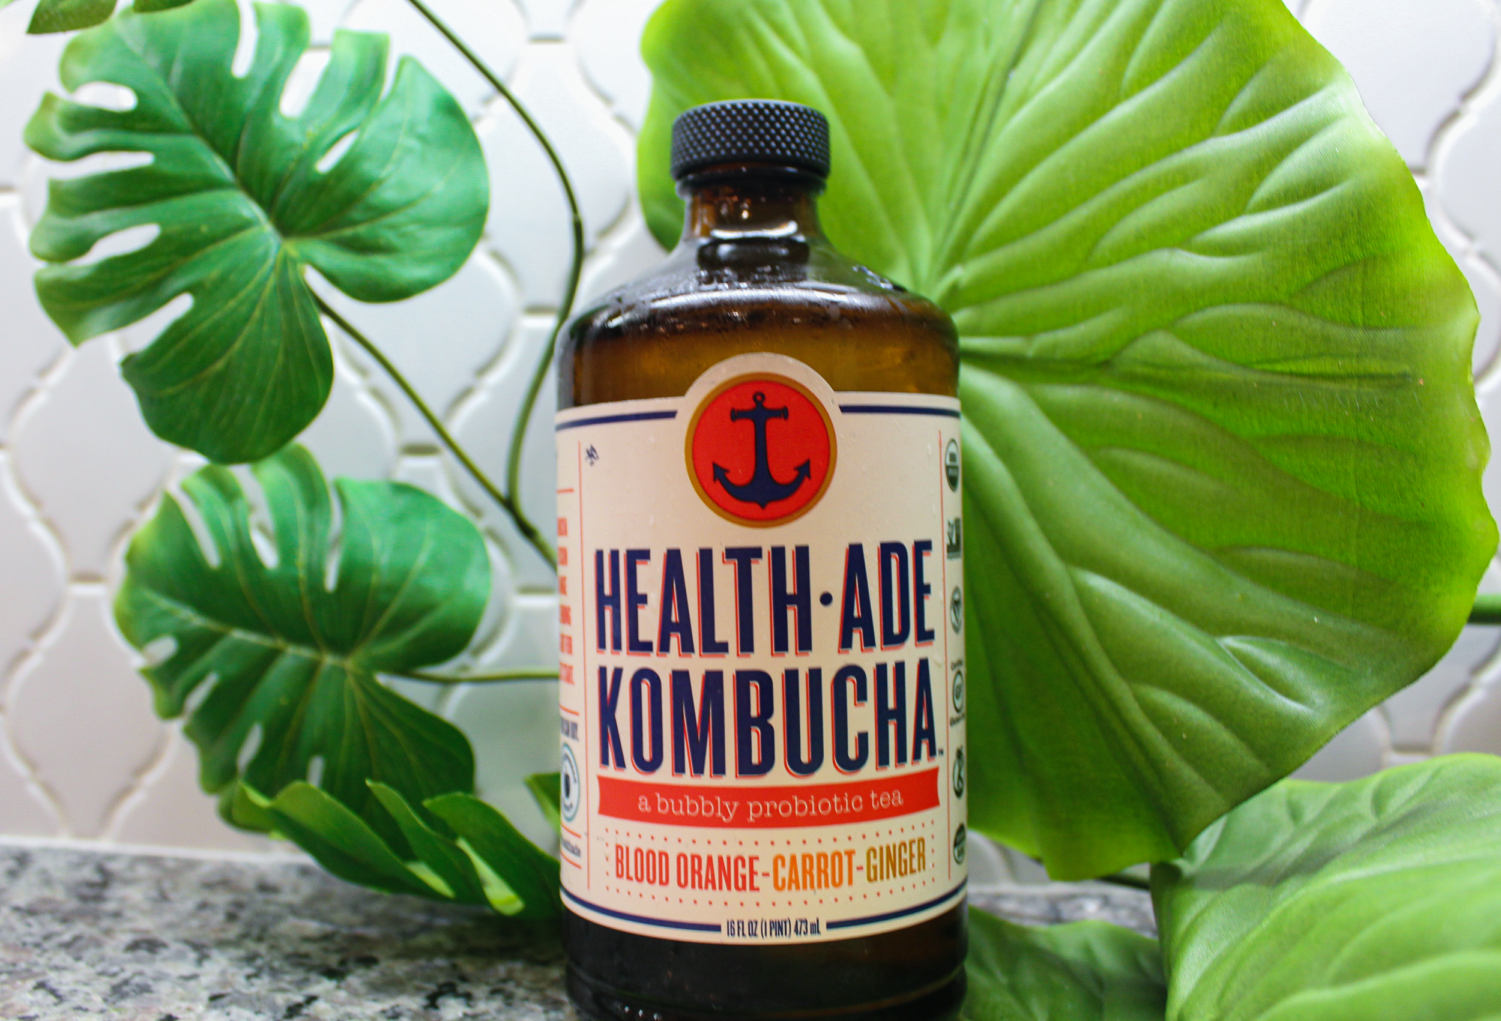 """Kombucha is a probiotic-rich beverage that provides many health benefits including enhancing digestive and liver health. The company, Health-Ade Kombucha is a Los Angeles-based company that strives to have the """"best tasting and highest quality kombucha,"""" according to their website."""